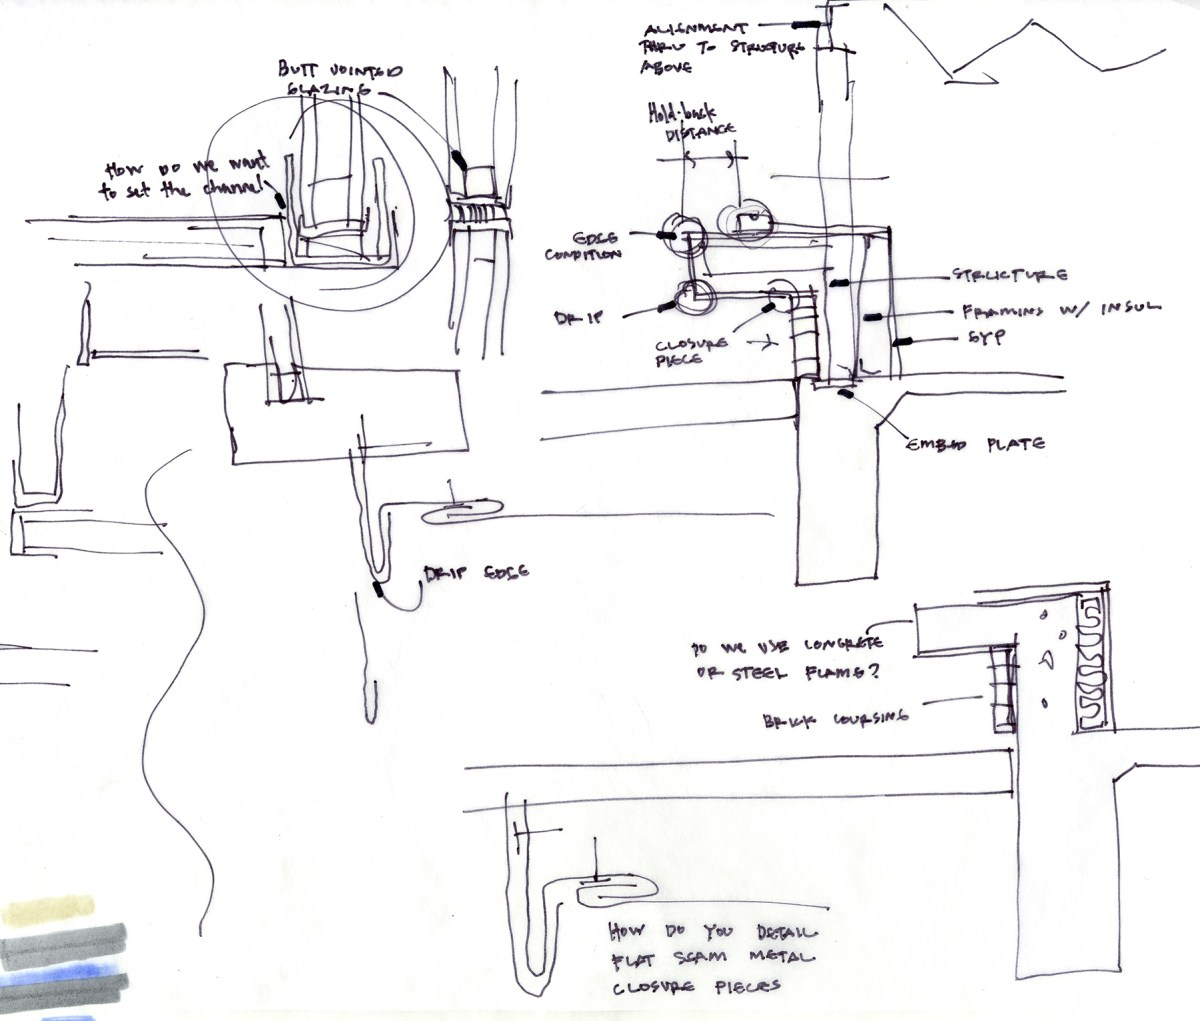 Architectural rough sketch with notes by Bob Borson